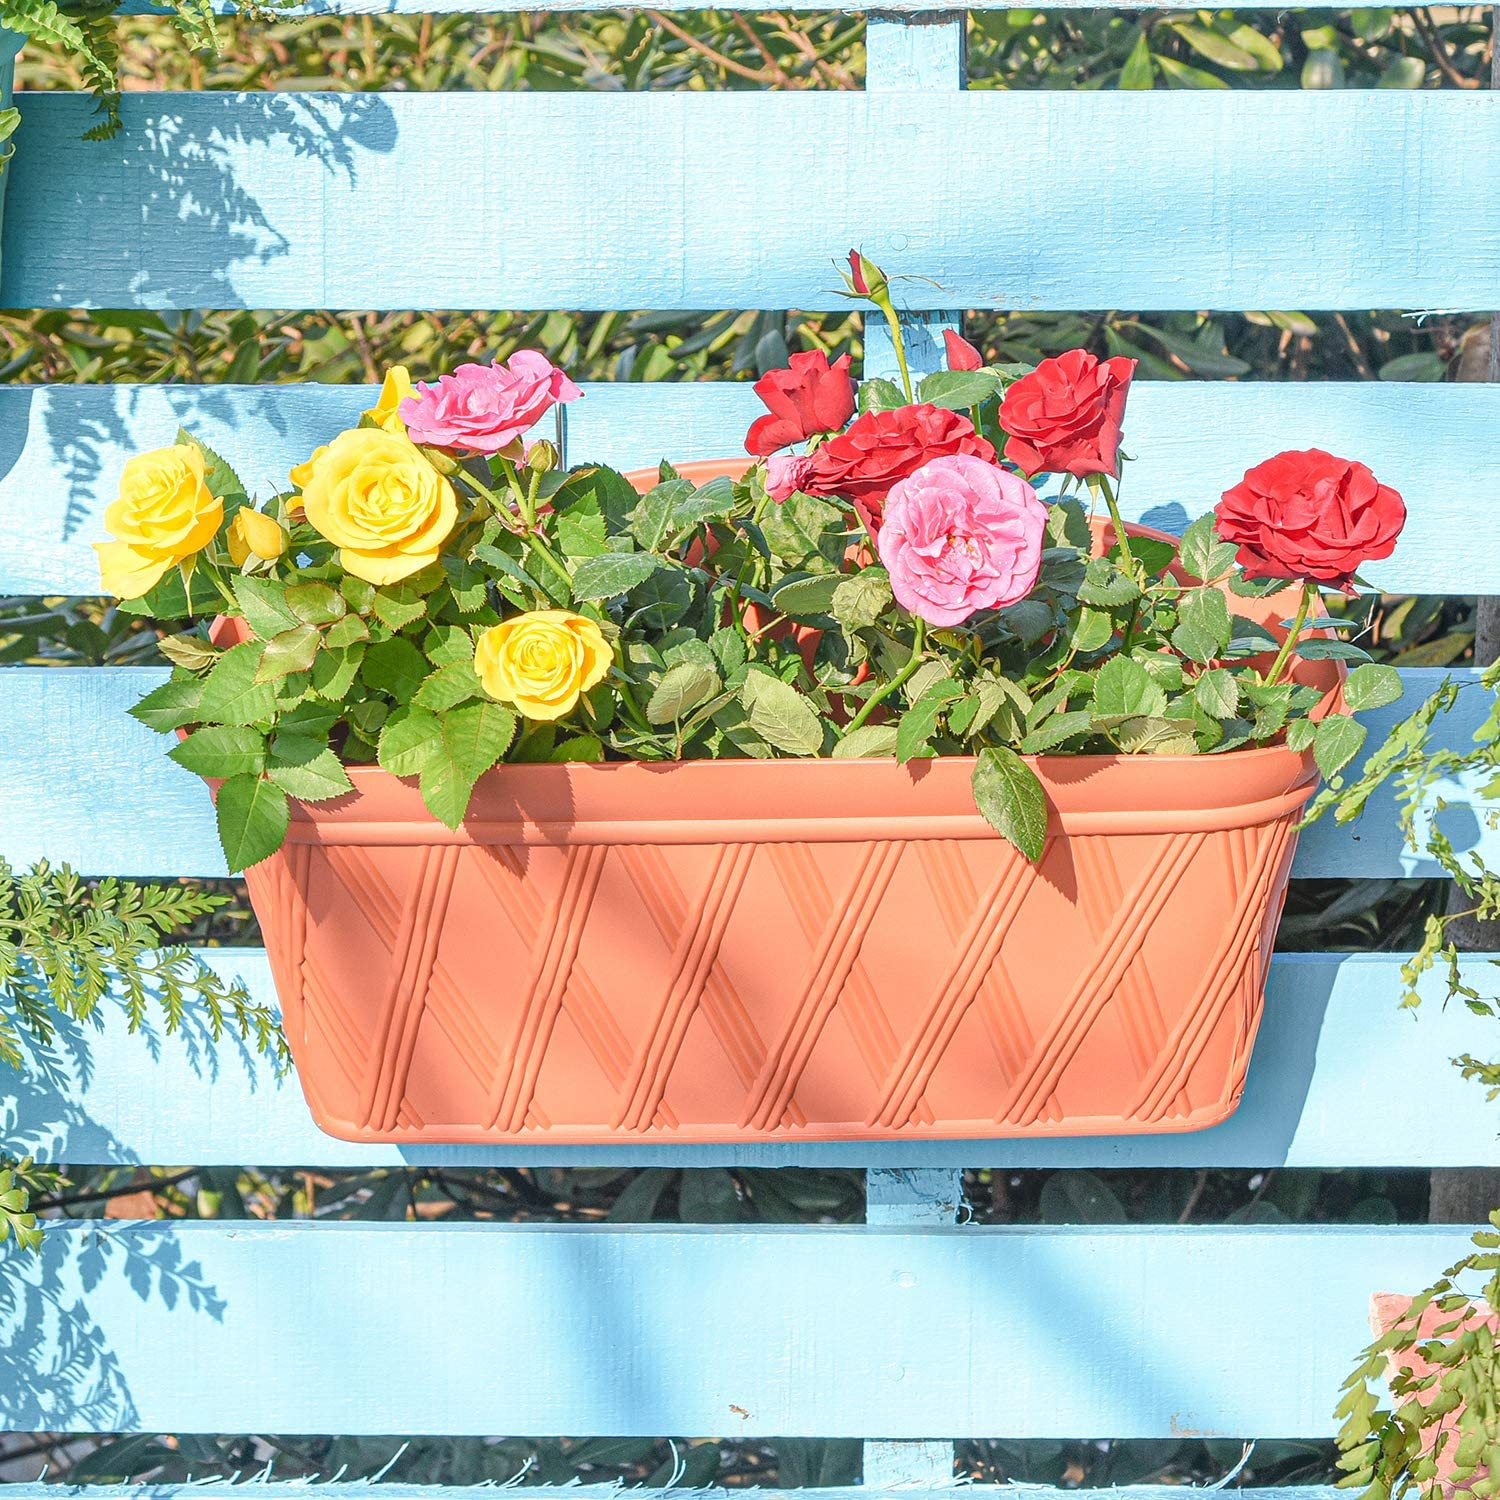 Sungmor Quality Plastic Wall Hanging Planter Surprise price - Max 85% OFF Rectangle P 3PC